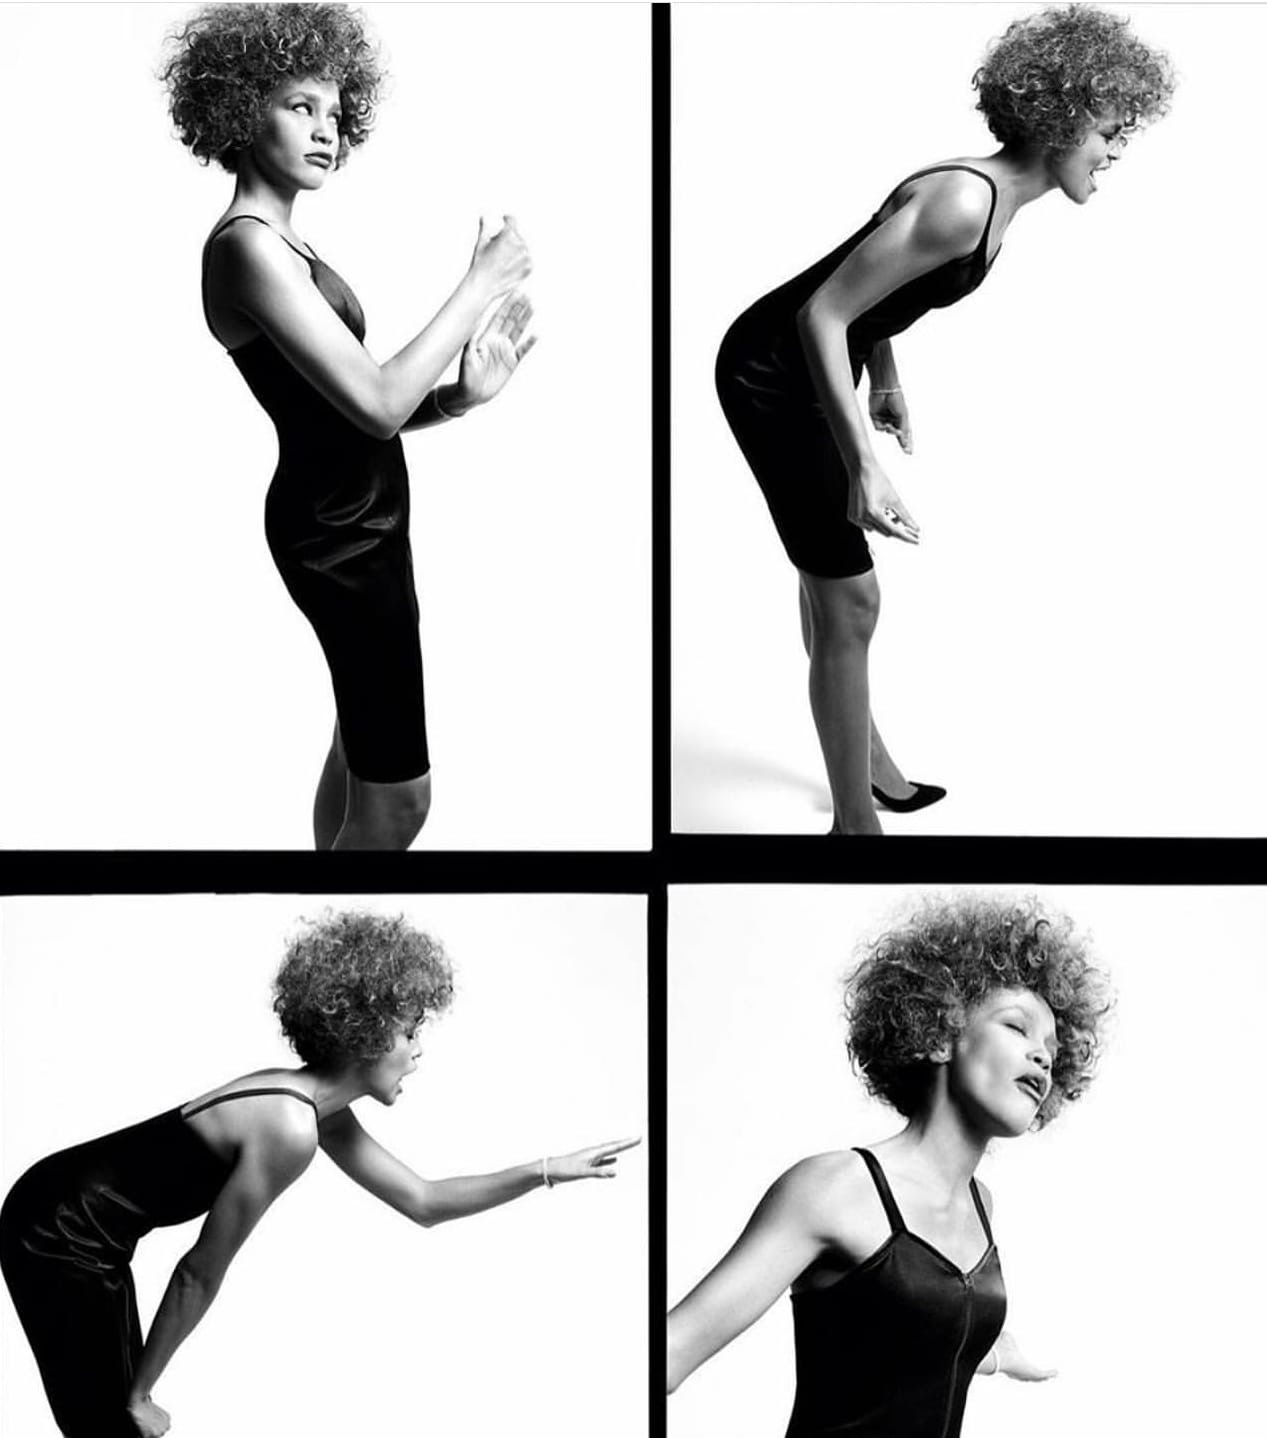 Whitney Houston photo by Steven Meisel in British Vogue June 2019 issue